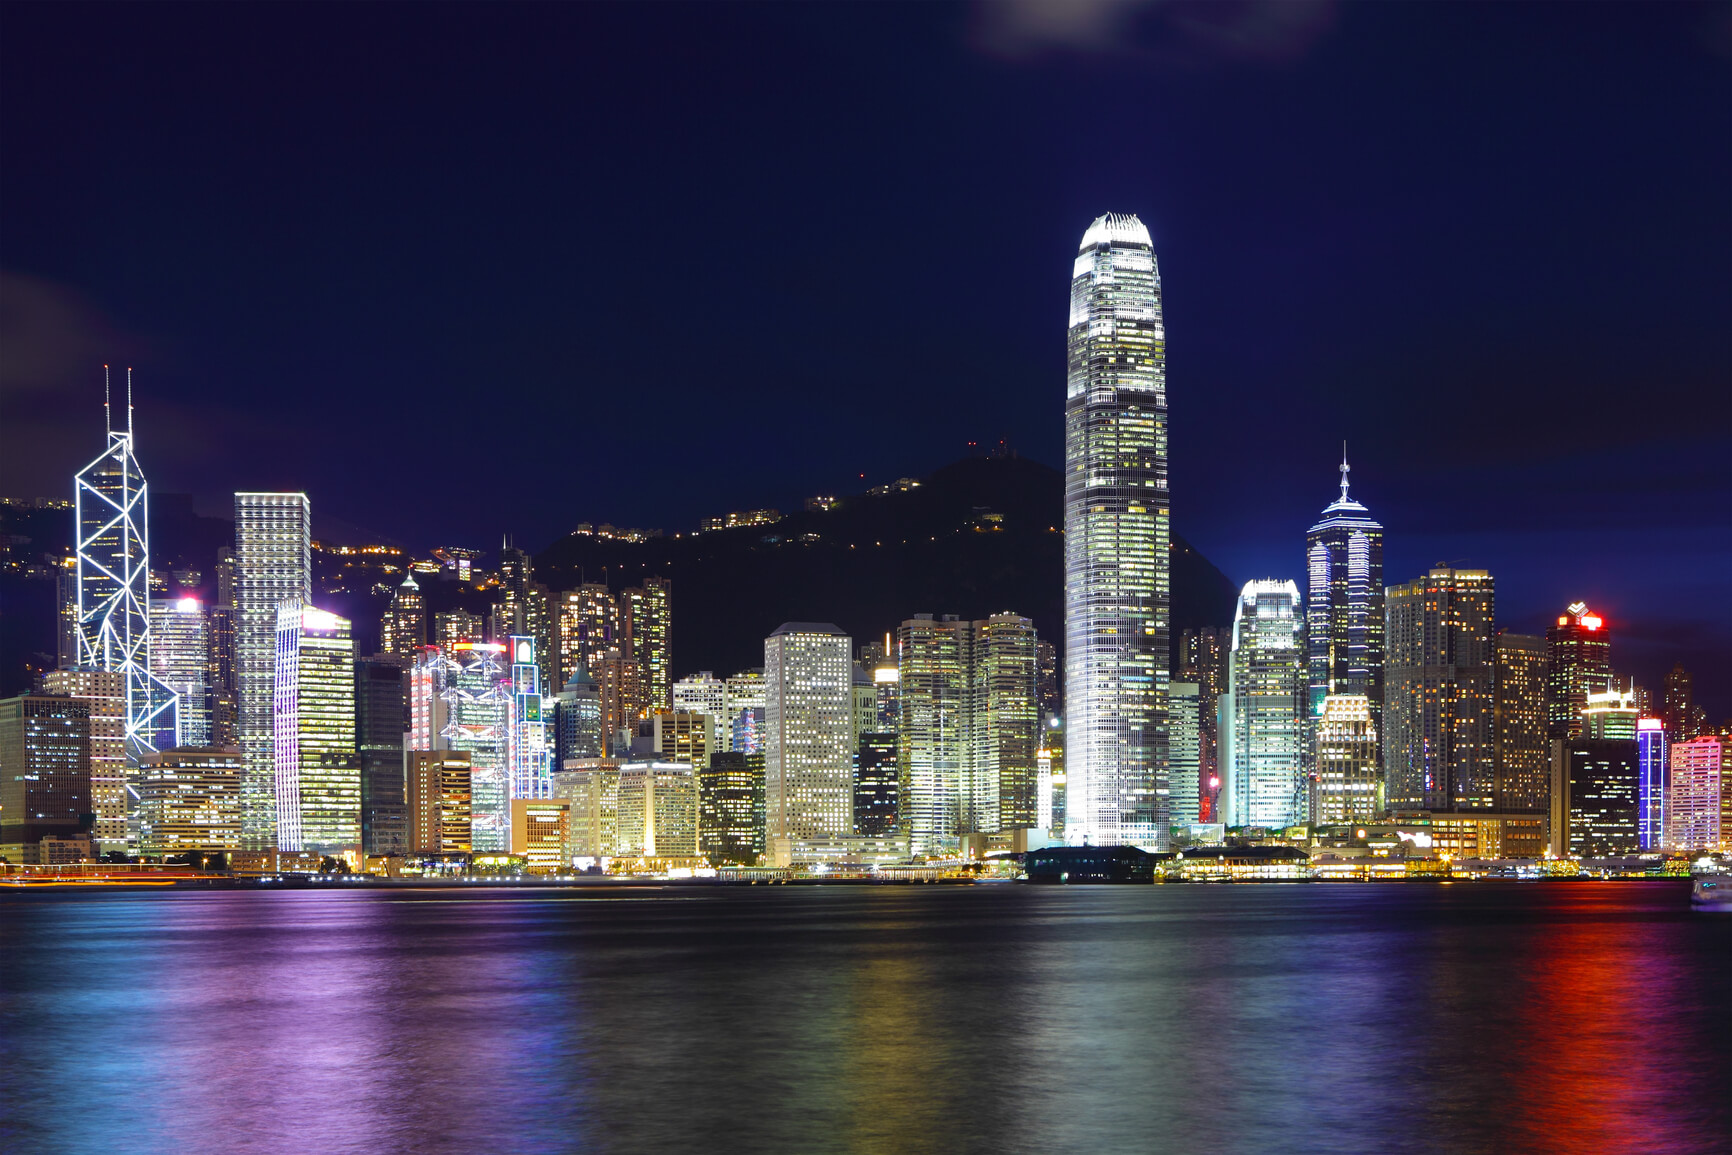 San Francisco to Hong Kong for only $464 roundtrip (Sep-Jan dates)